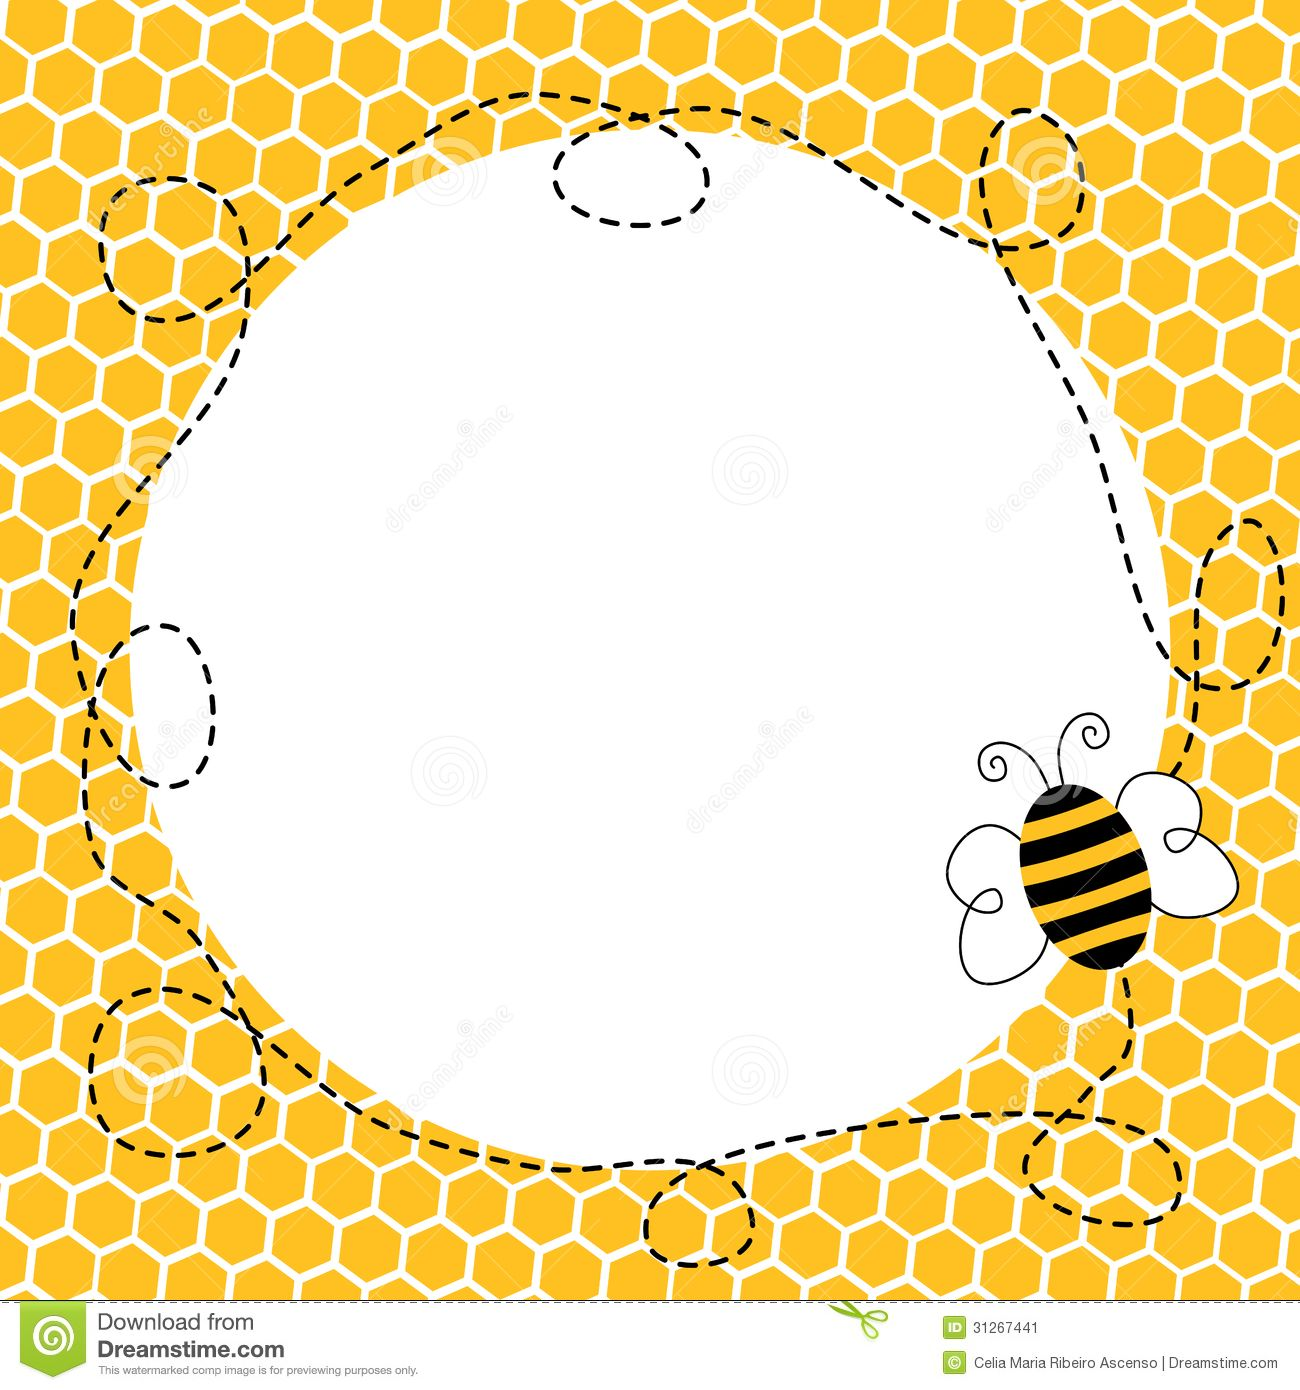 Flying in a honeycomb. Bee clipart frame